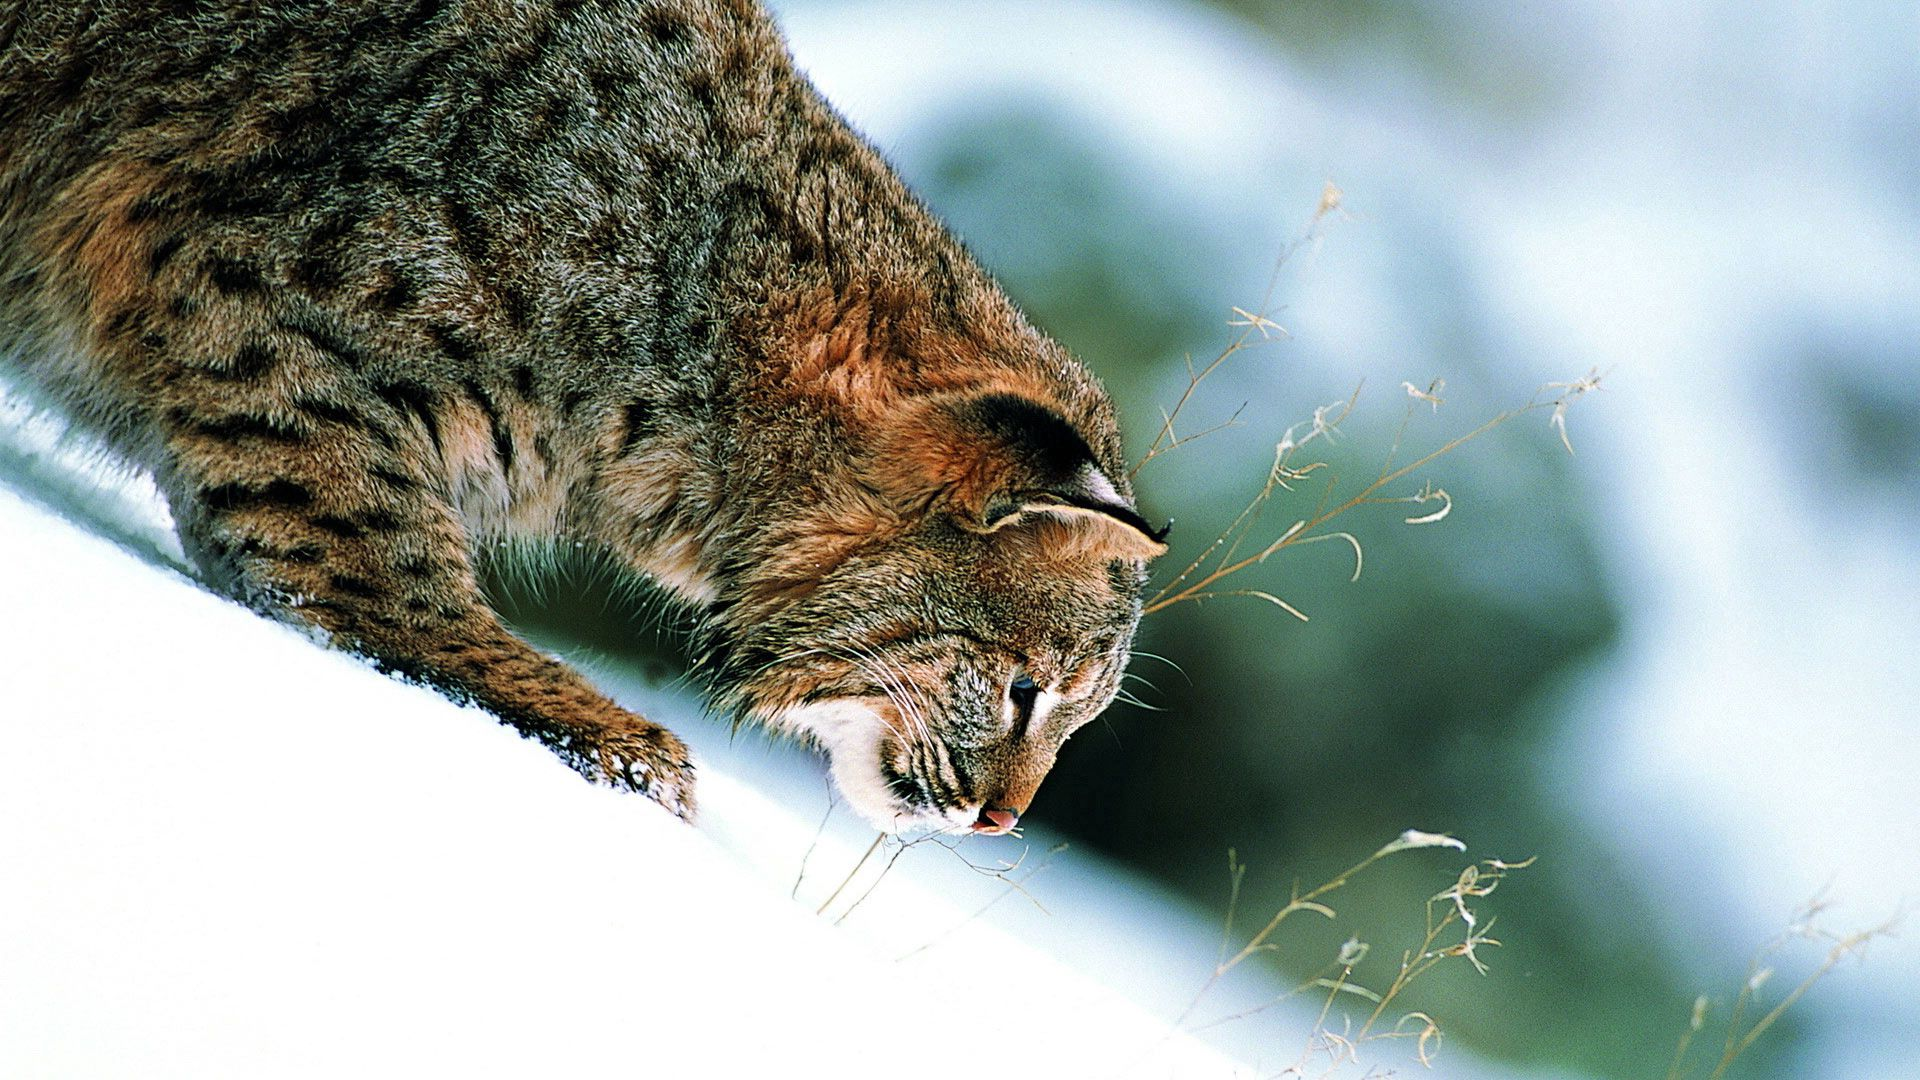 62765 download wallpaper Animals, Winter, Grass, Snow, Iris, Slope screensavers and pictures for free